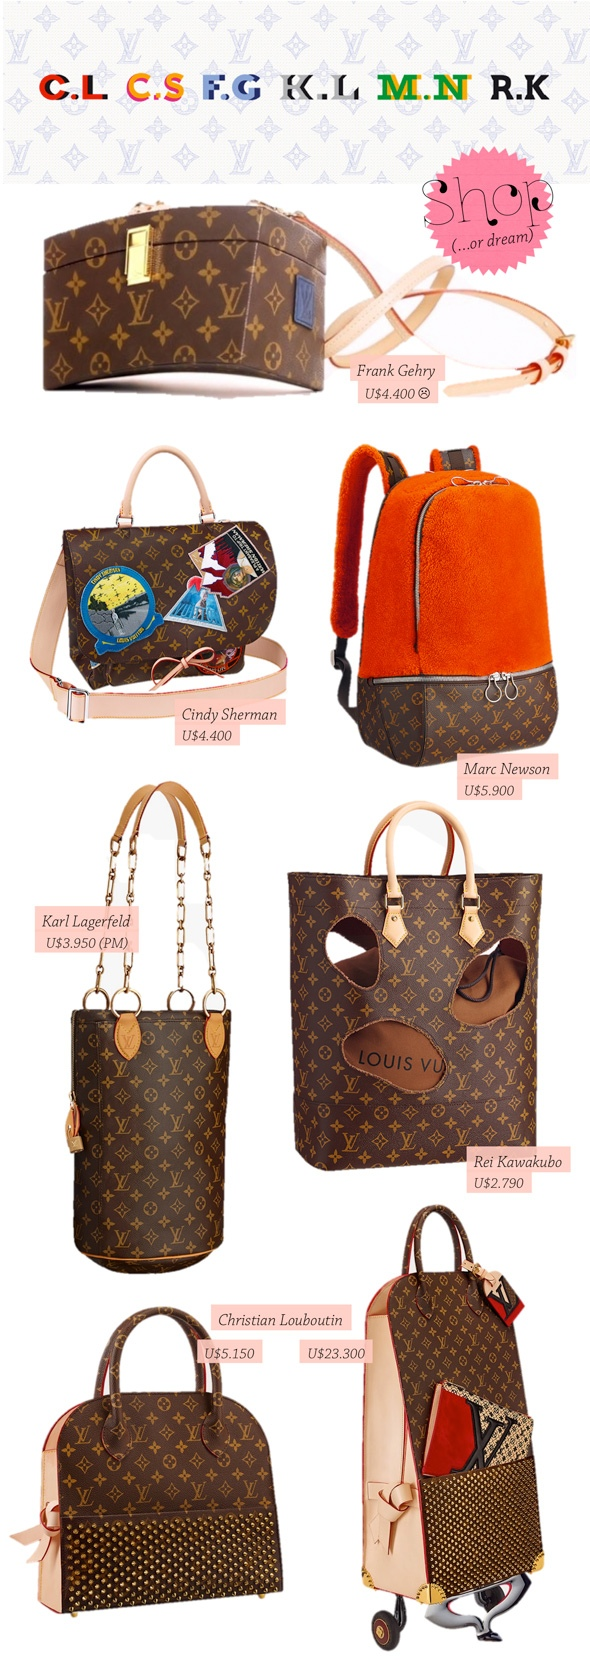 iconoclasts-shop-price-bags-louis-vuitton